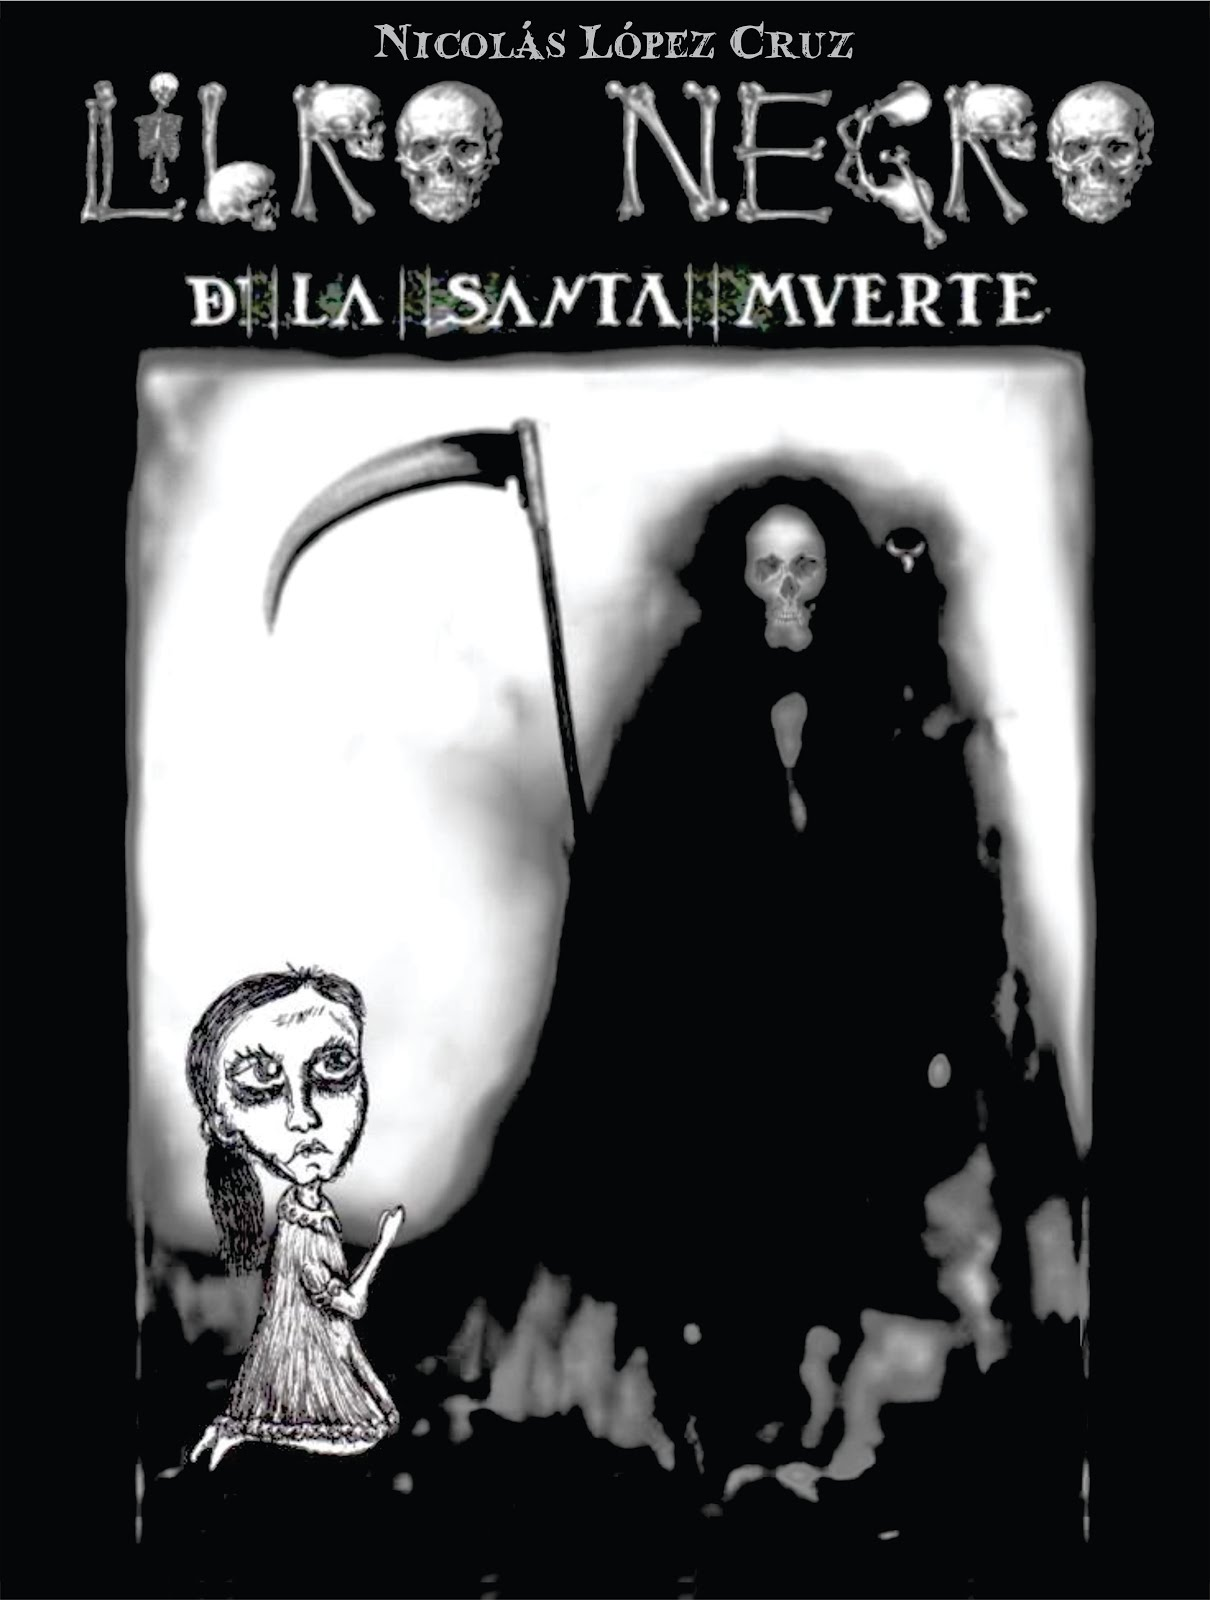 LIBRO NEGRO DE LA SANTA MUERTE. Poesía. Con ilustraciones del autor.